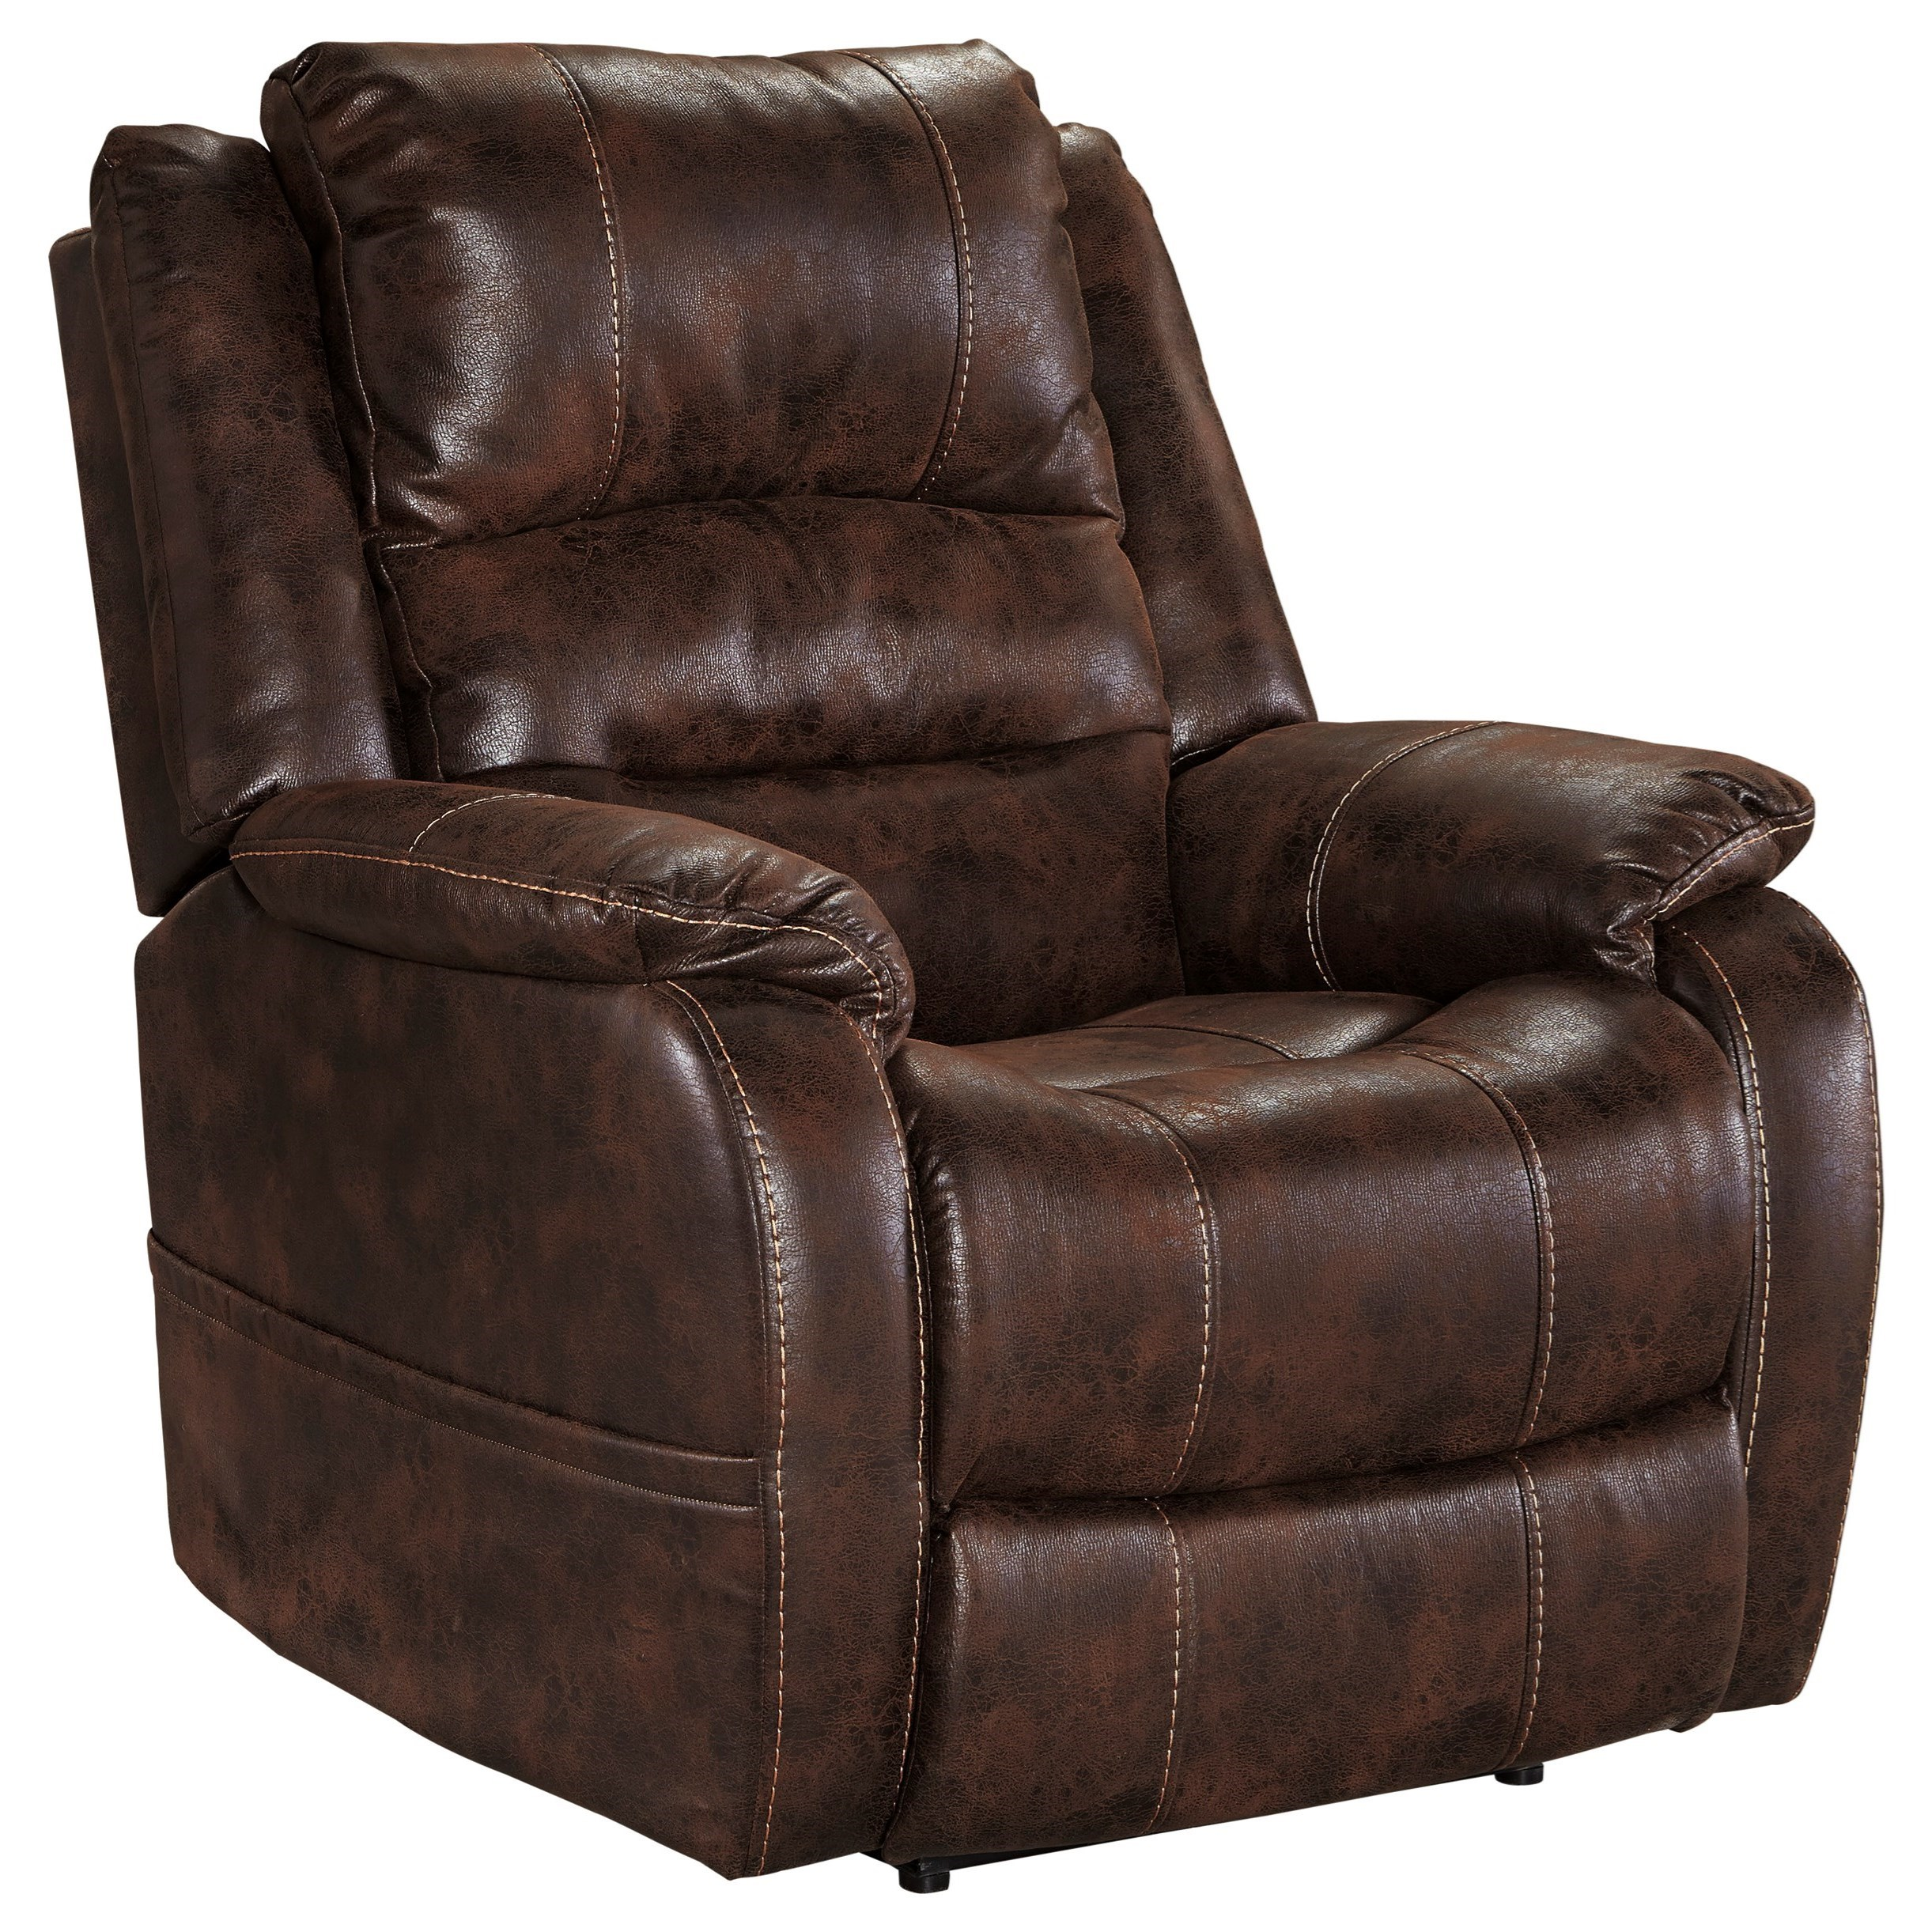 Ashley Recliner Chair Signature Design By Ashley Barling 6880213 Faux Leather